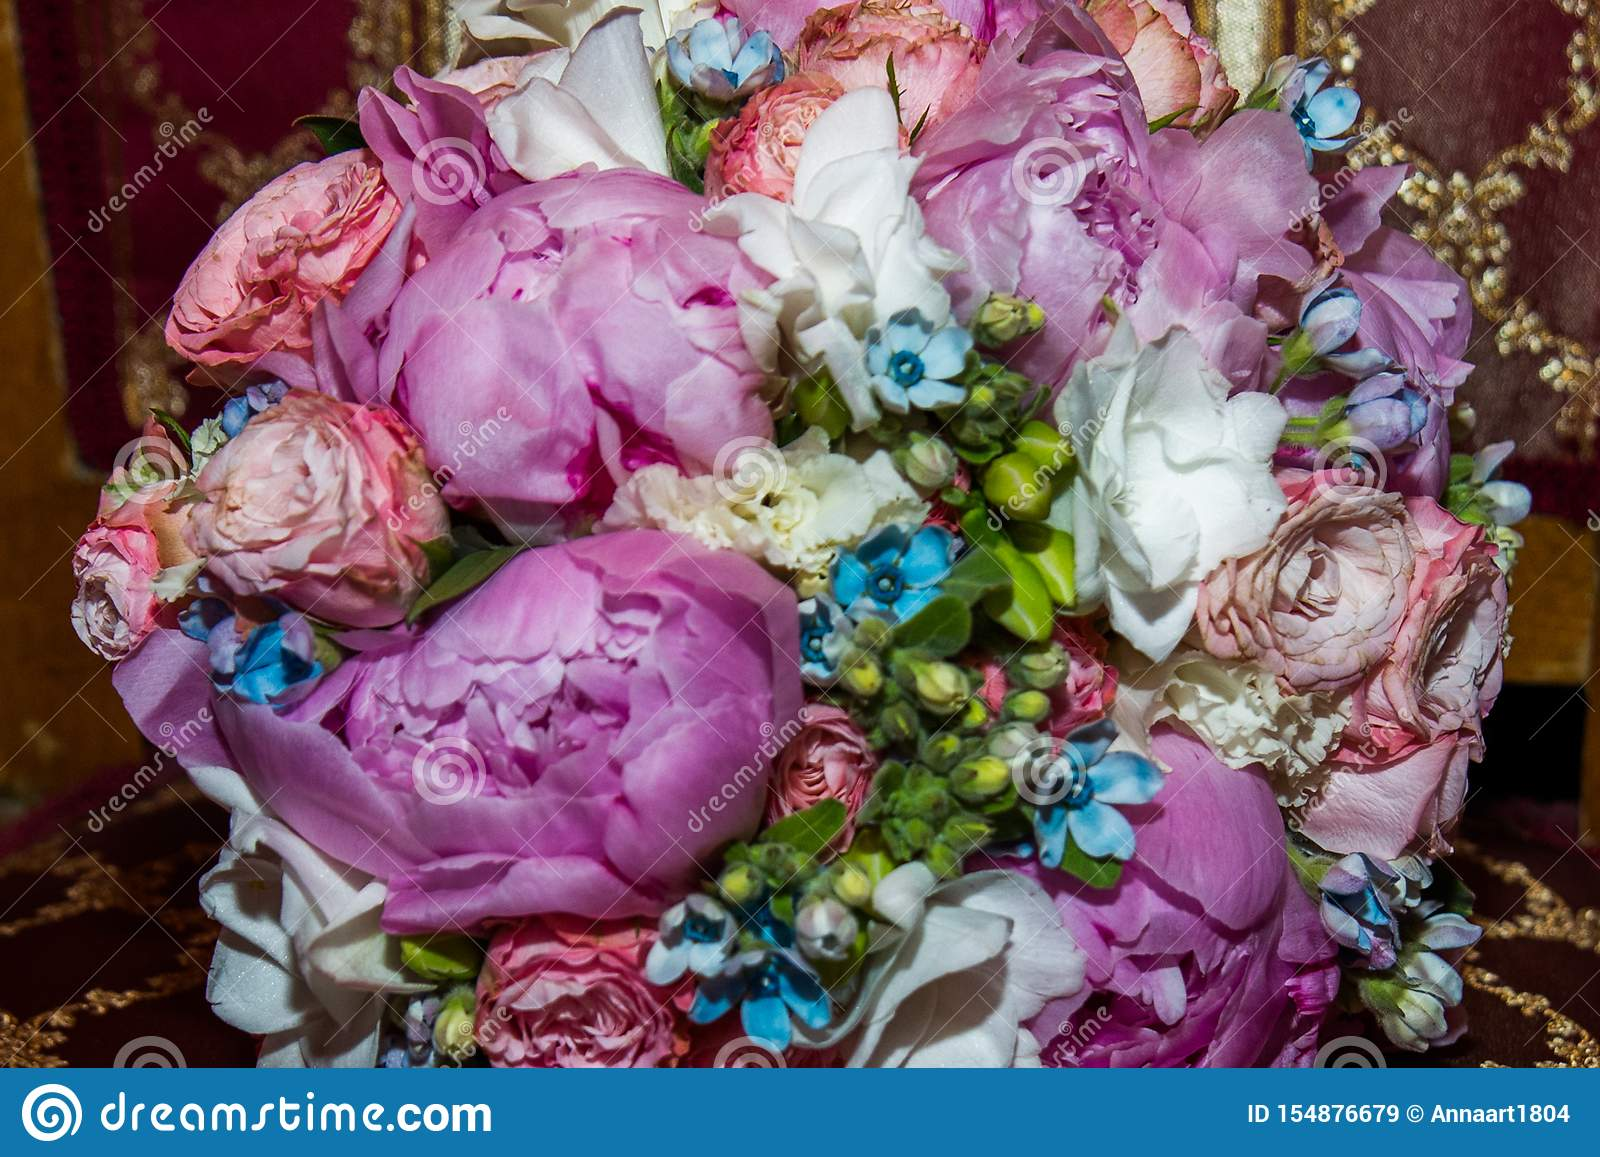 Romantic Bridal Bouquet Of Different Flowers Beautiful Pink Roses